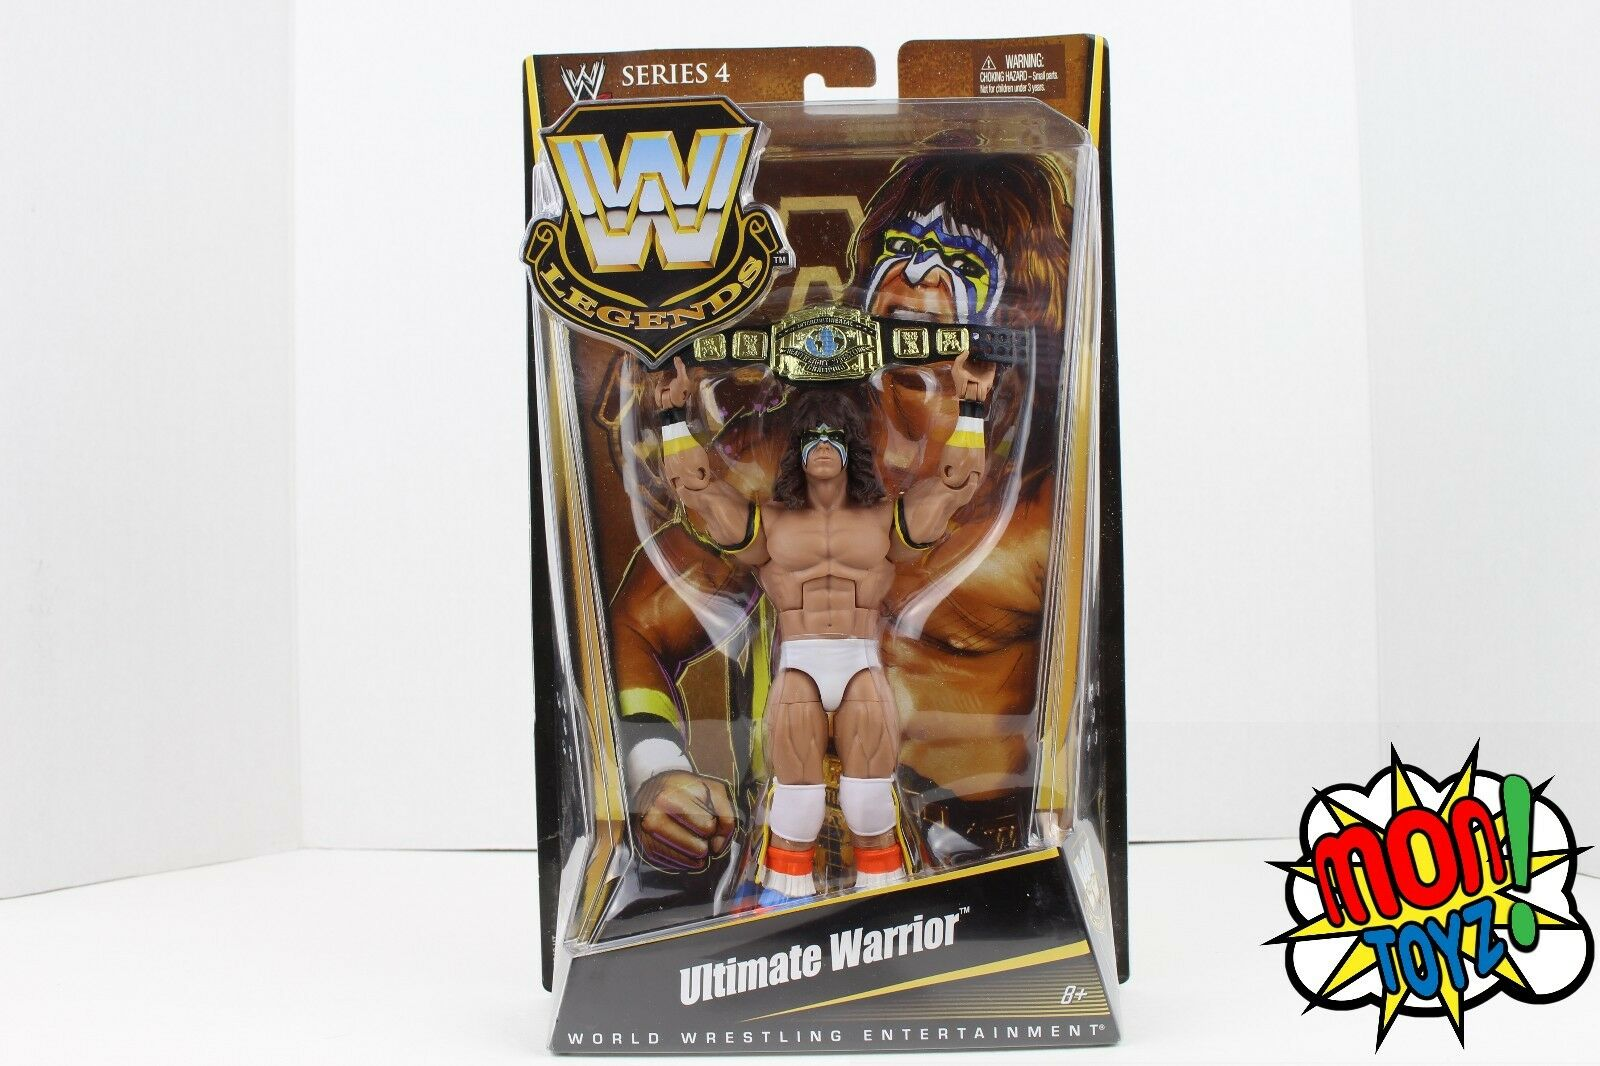 Ultimate Warrior WWE Wrestling Legends Series 4 Action Figure HTR NEW